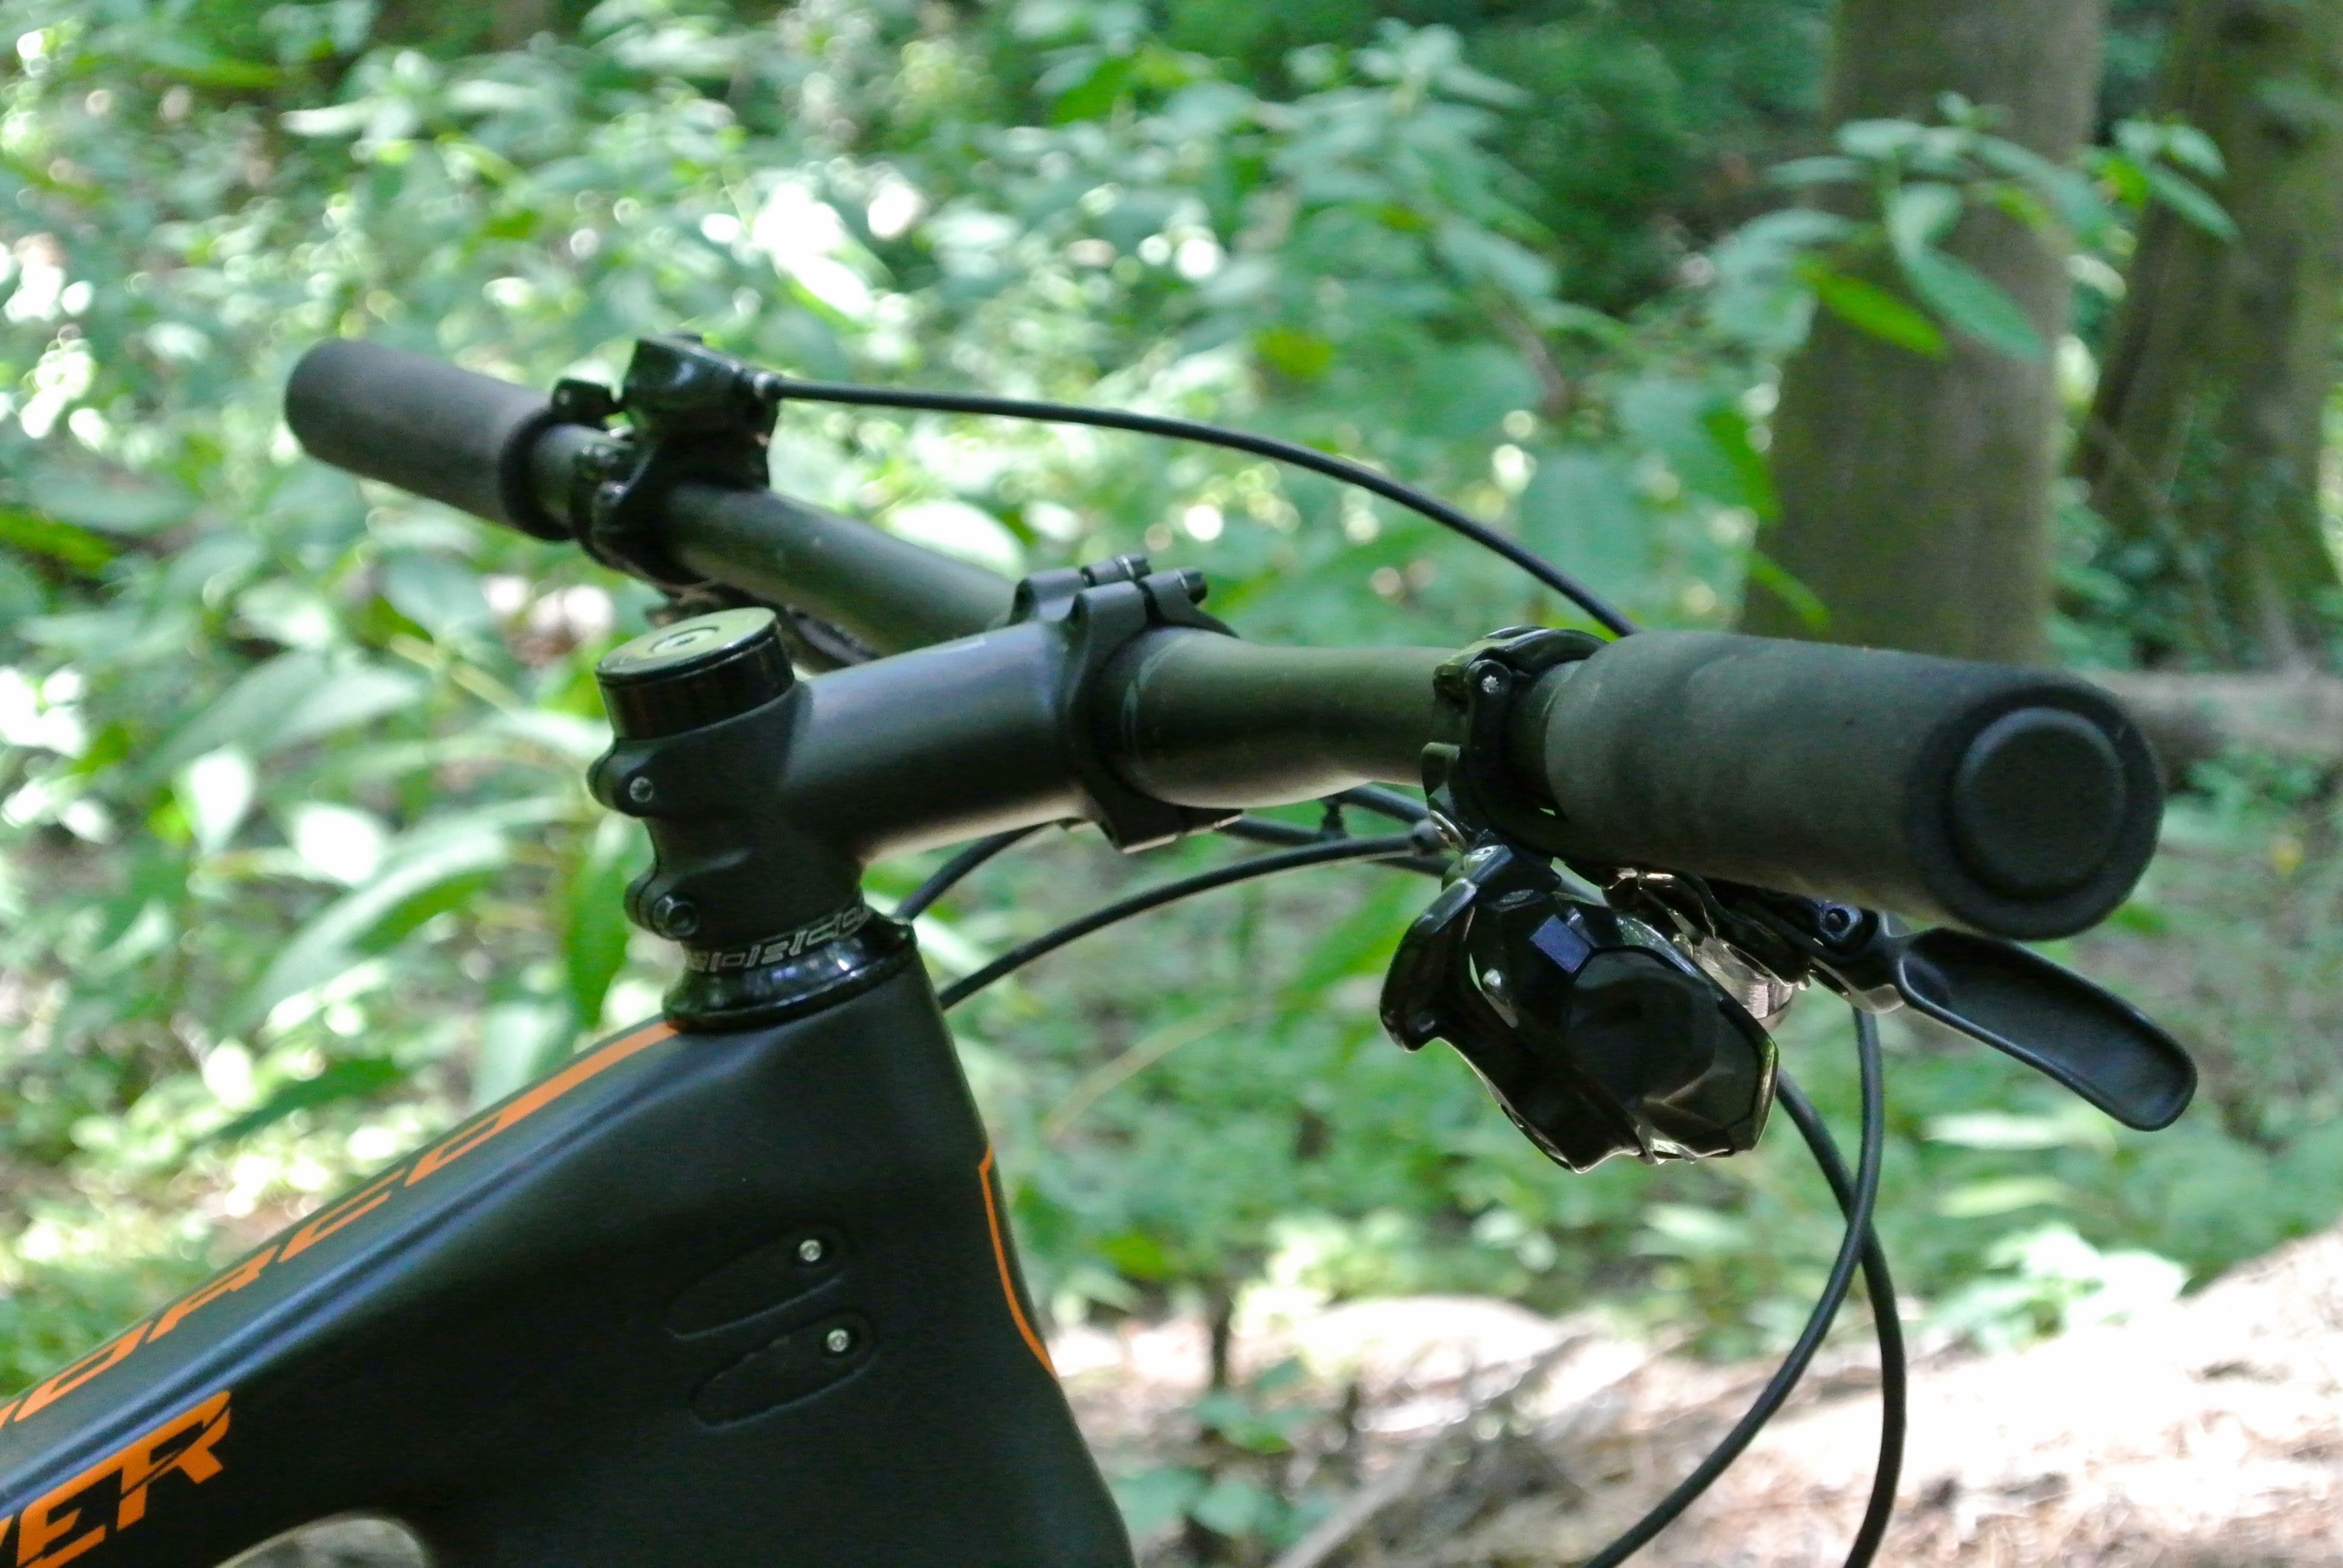 2f386aed29c Norco Revolver 27.5 Long Term Review - Singletracks Mountain Bike News